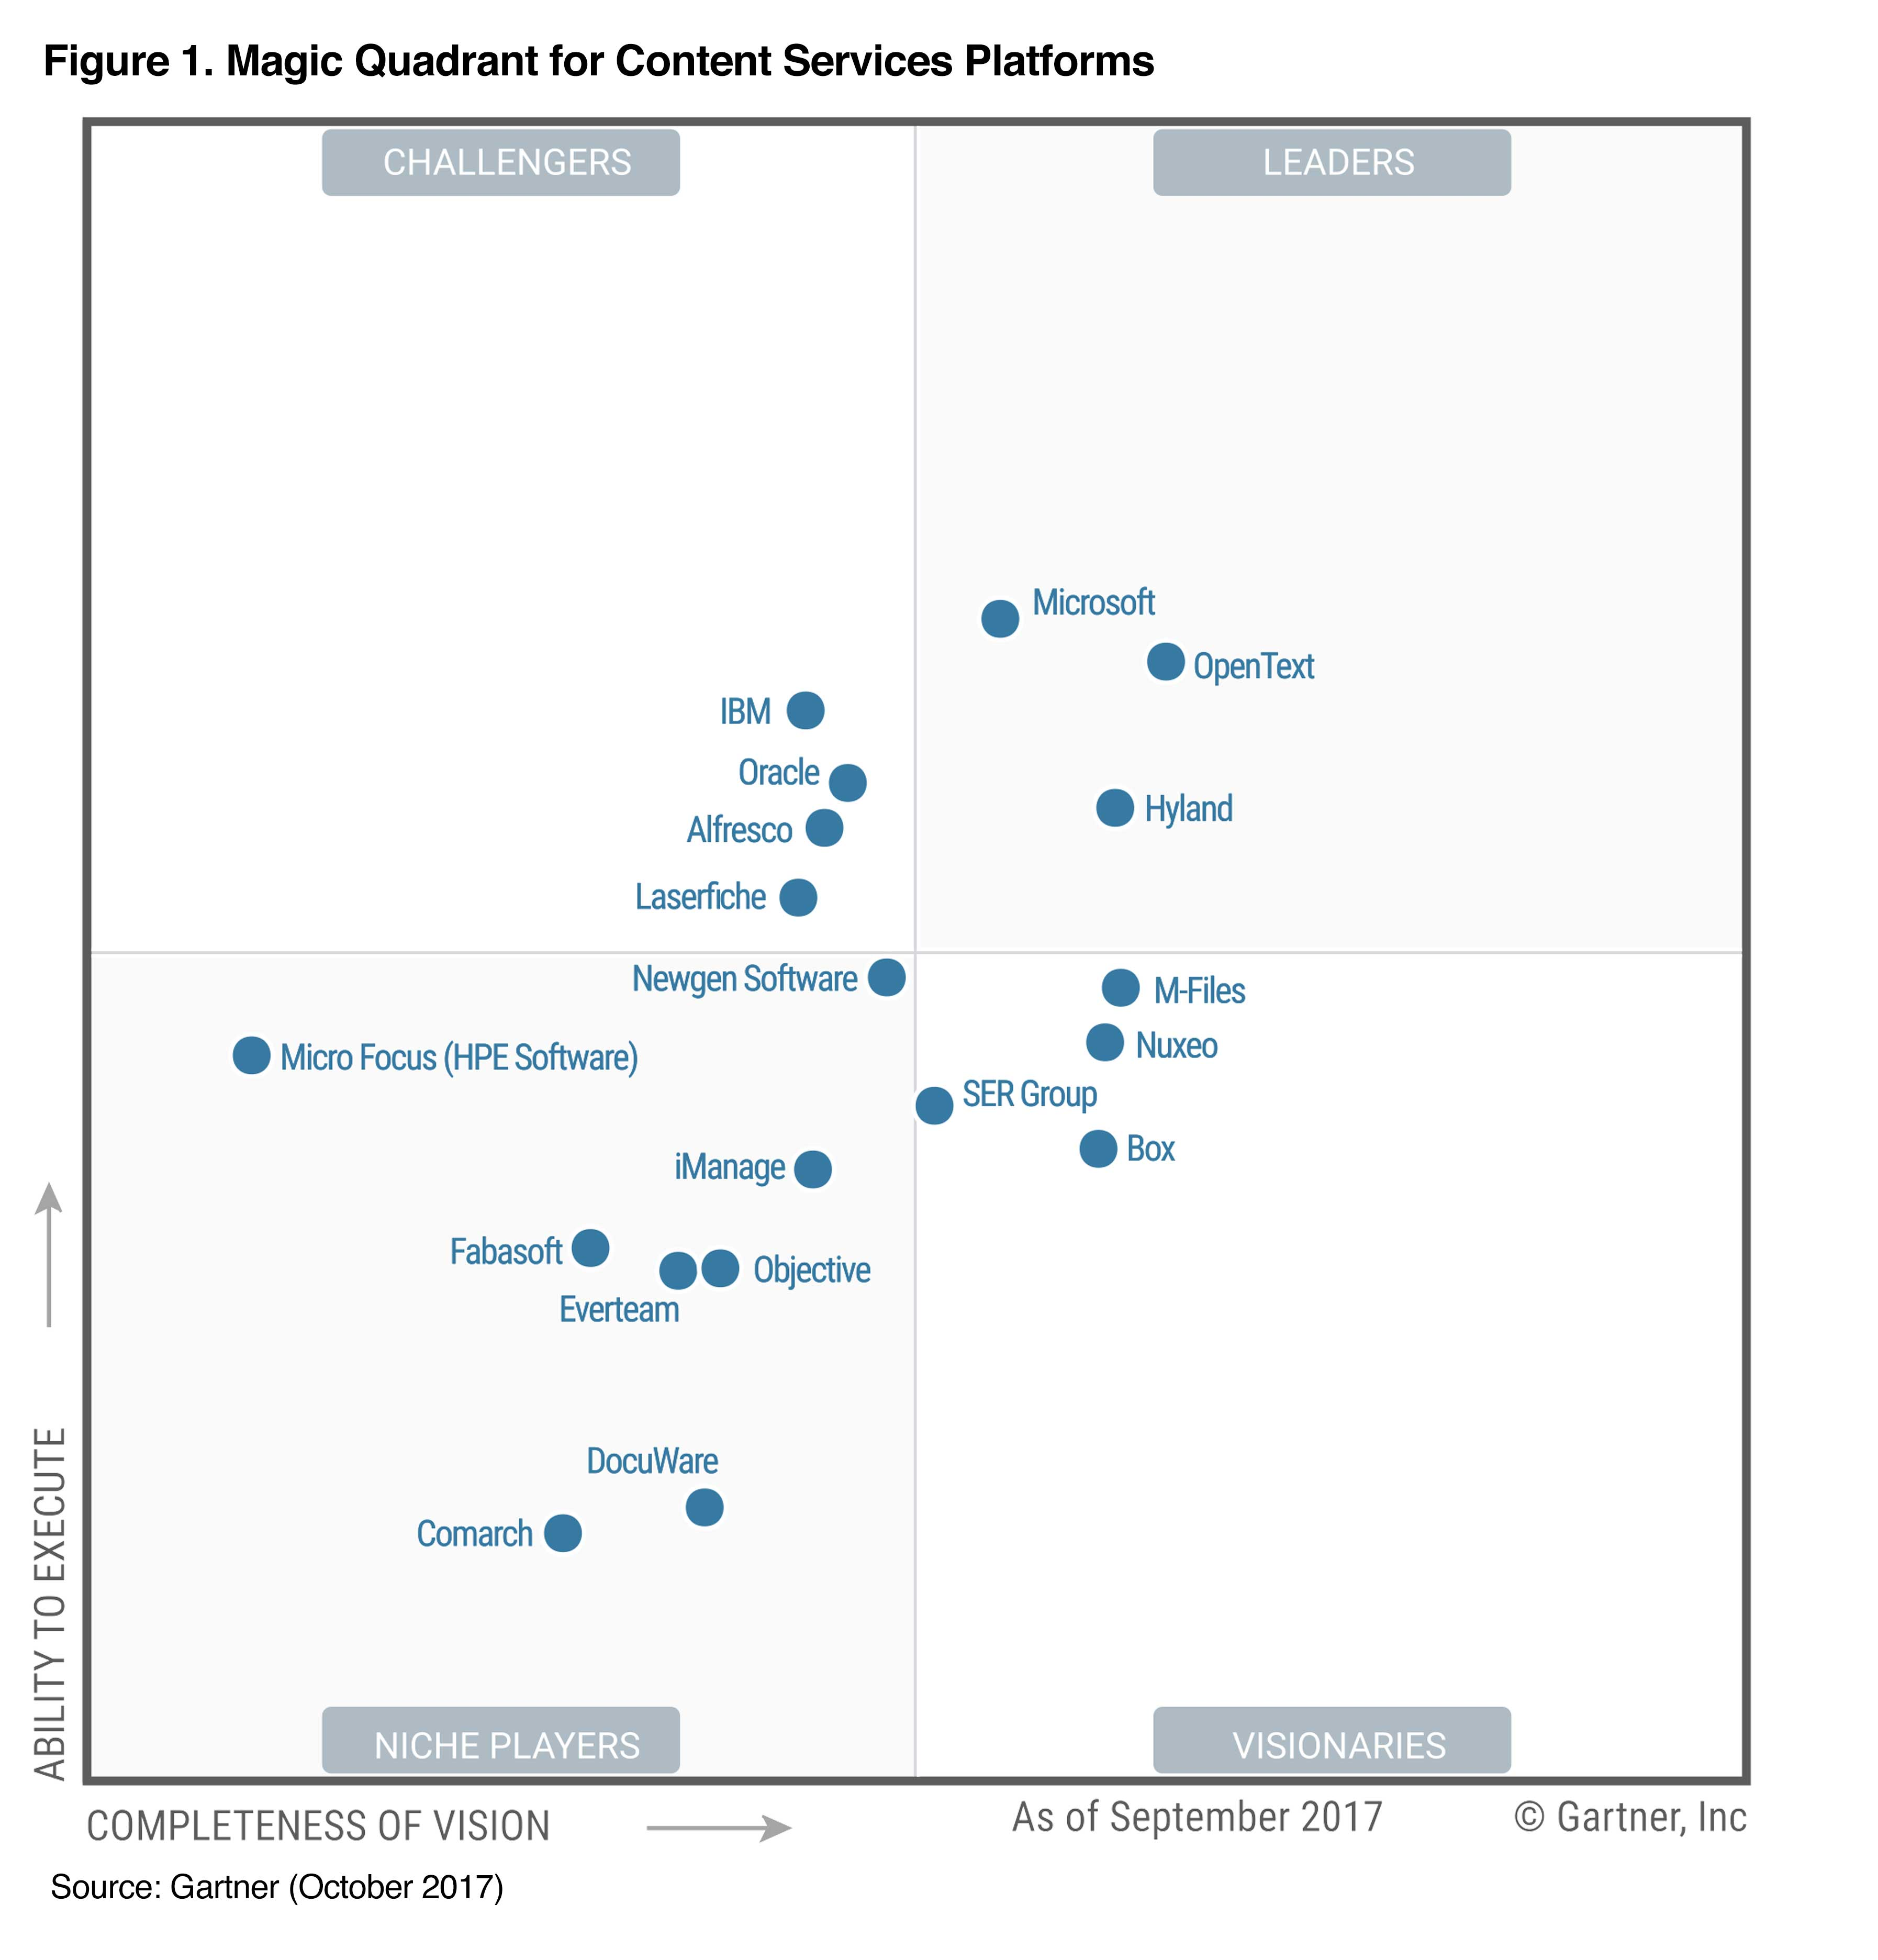 Magic Quadrant for Content Services Platforms